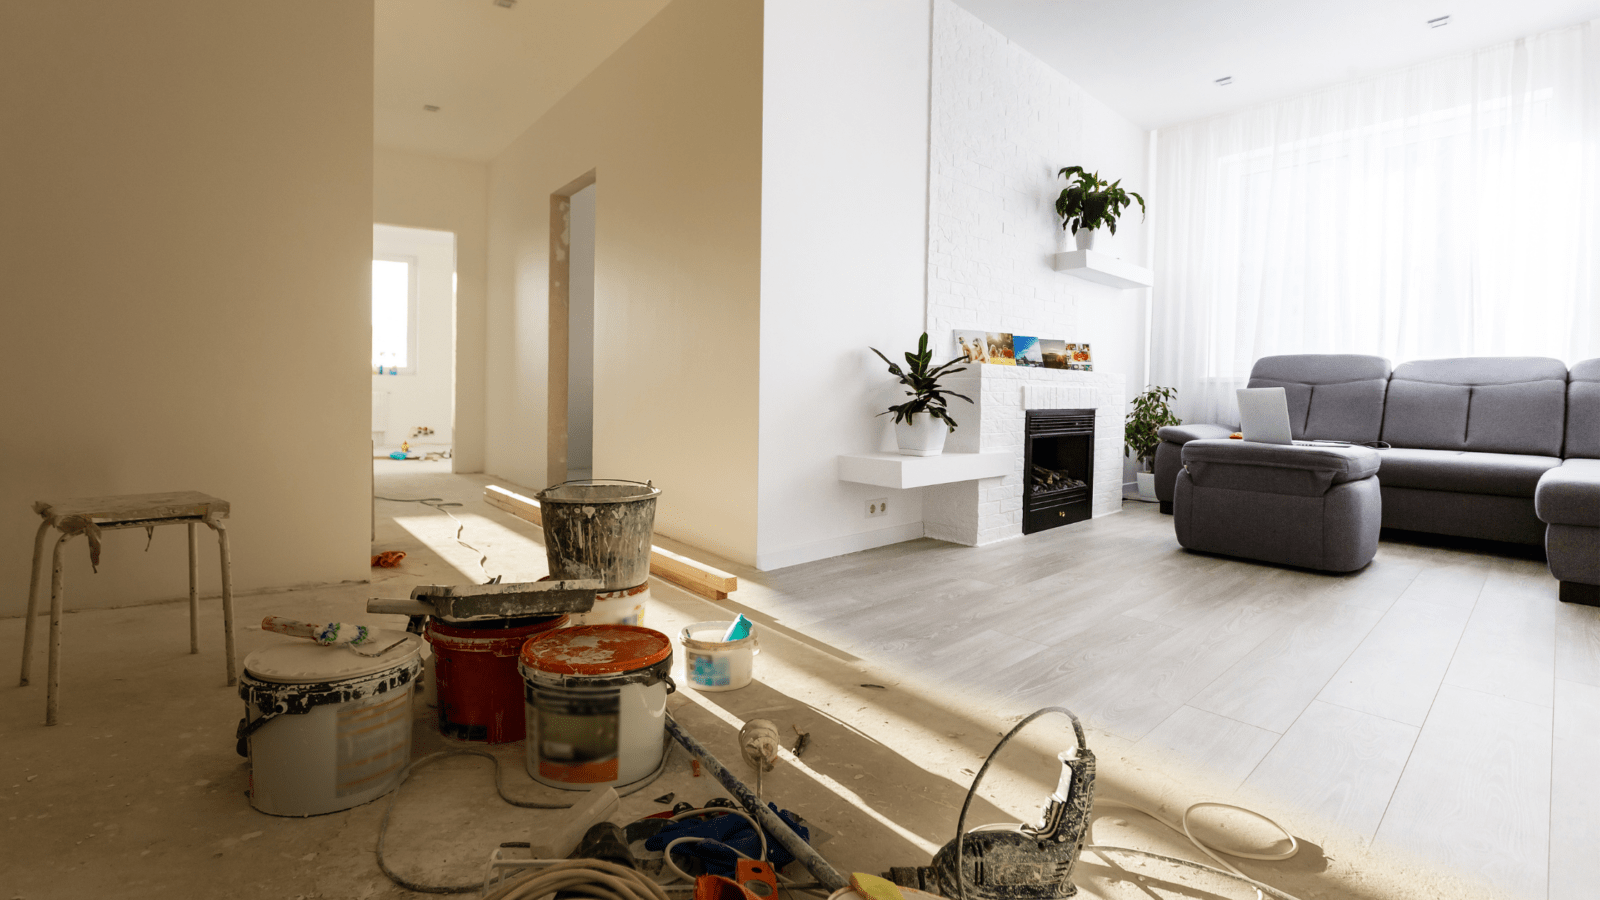 inside of a house going through a renovation